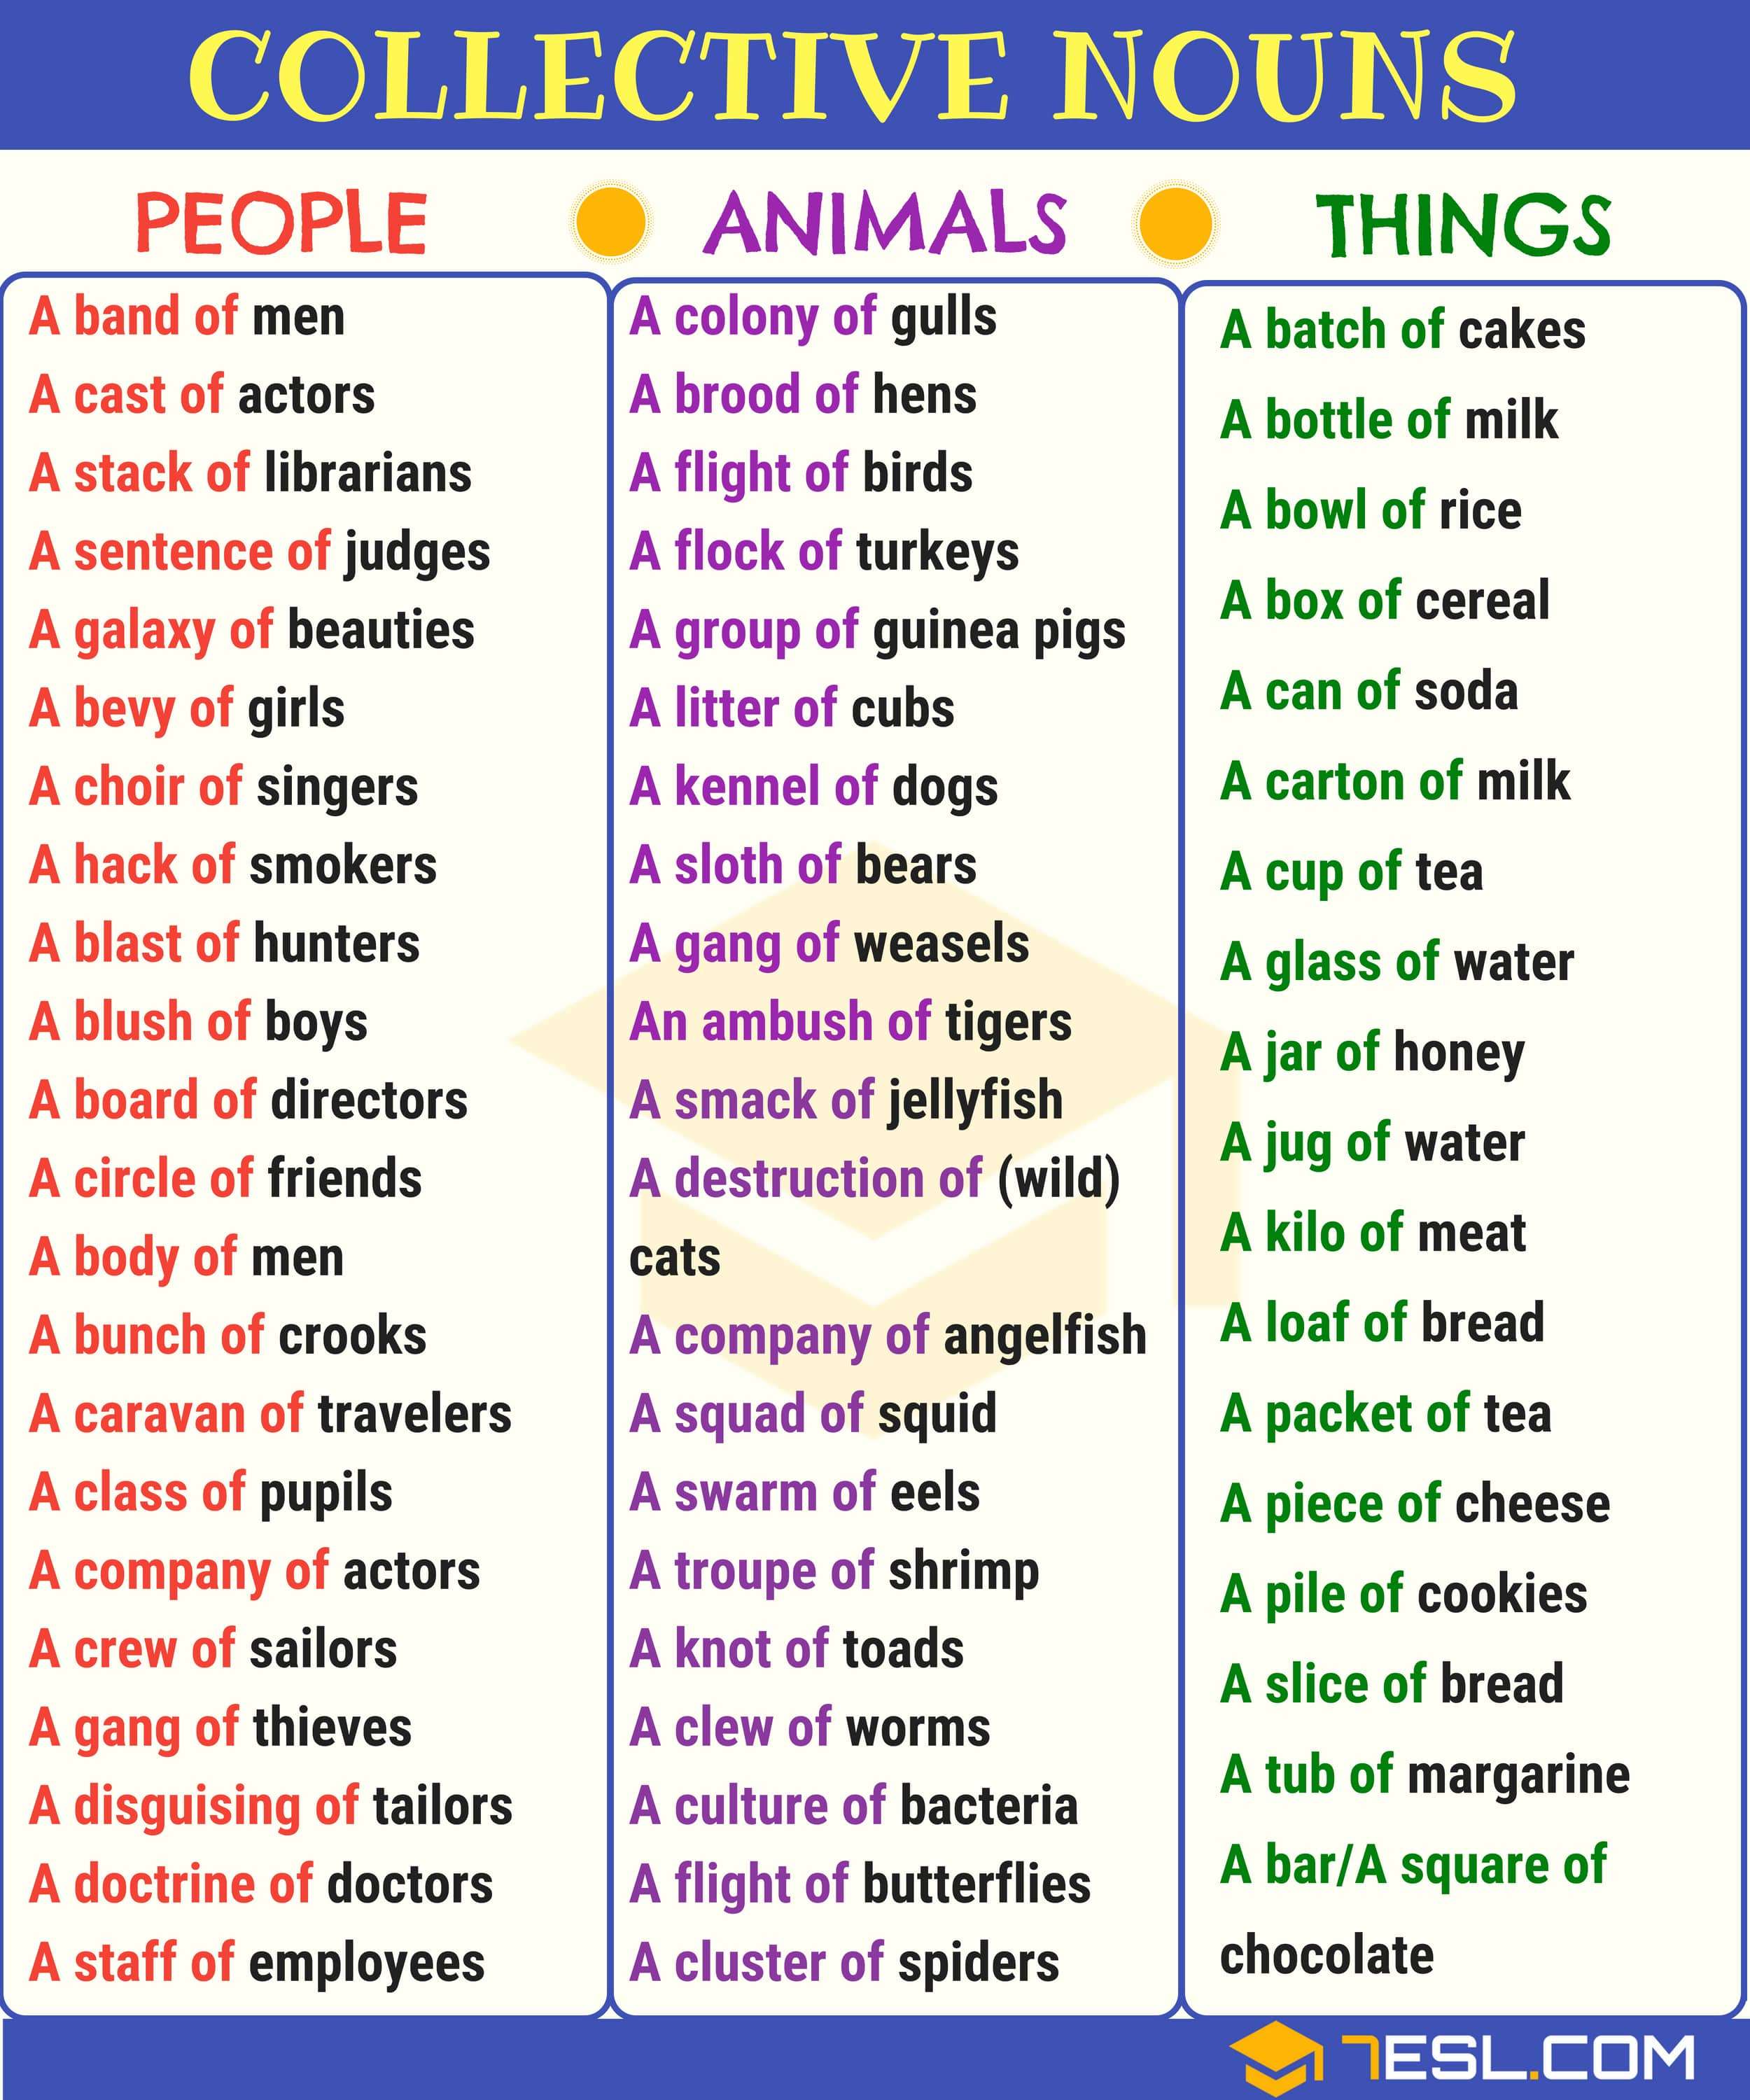 Common Collective Nouns